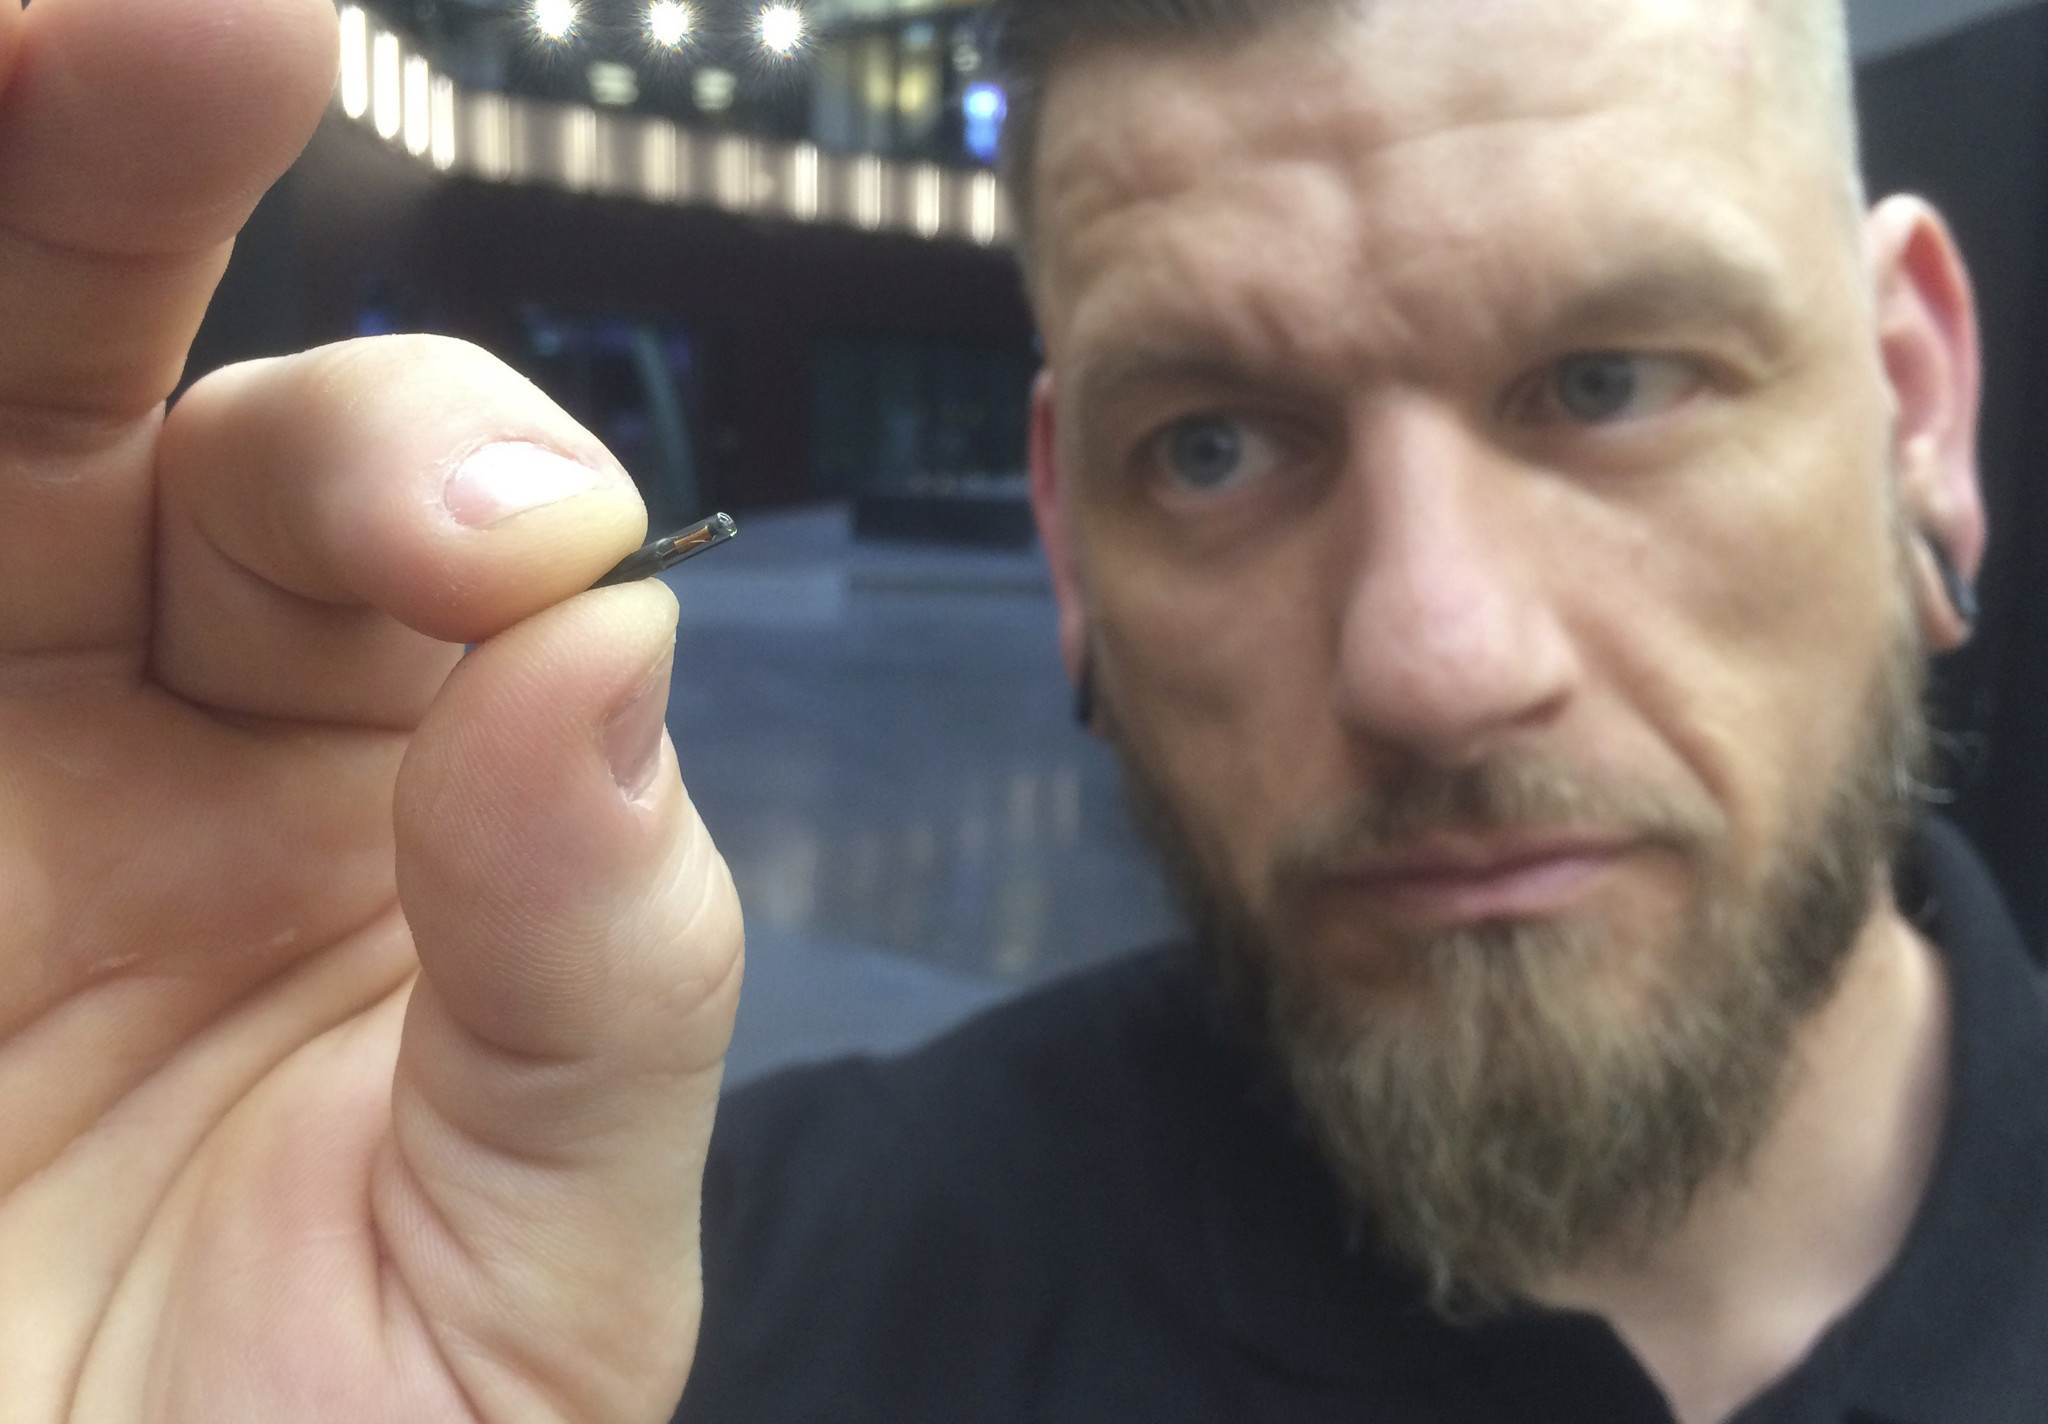 Companies Start Implanting Microchips Into Workers Bodies